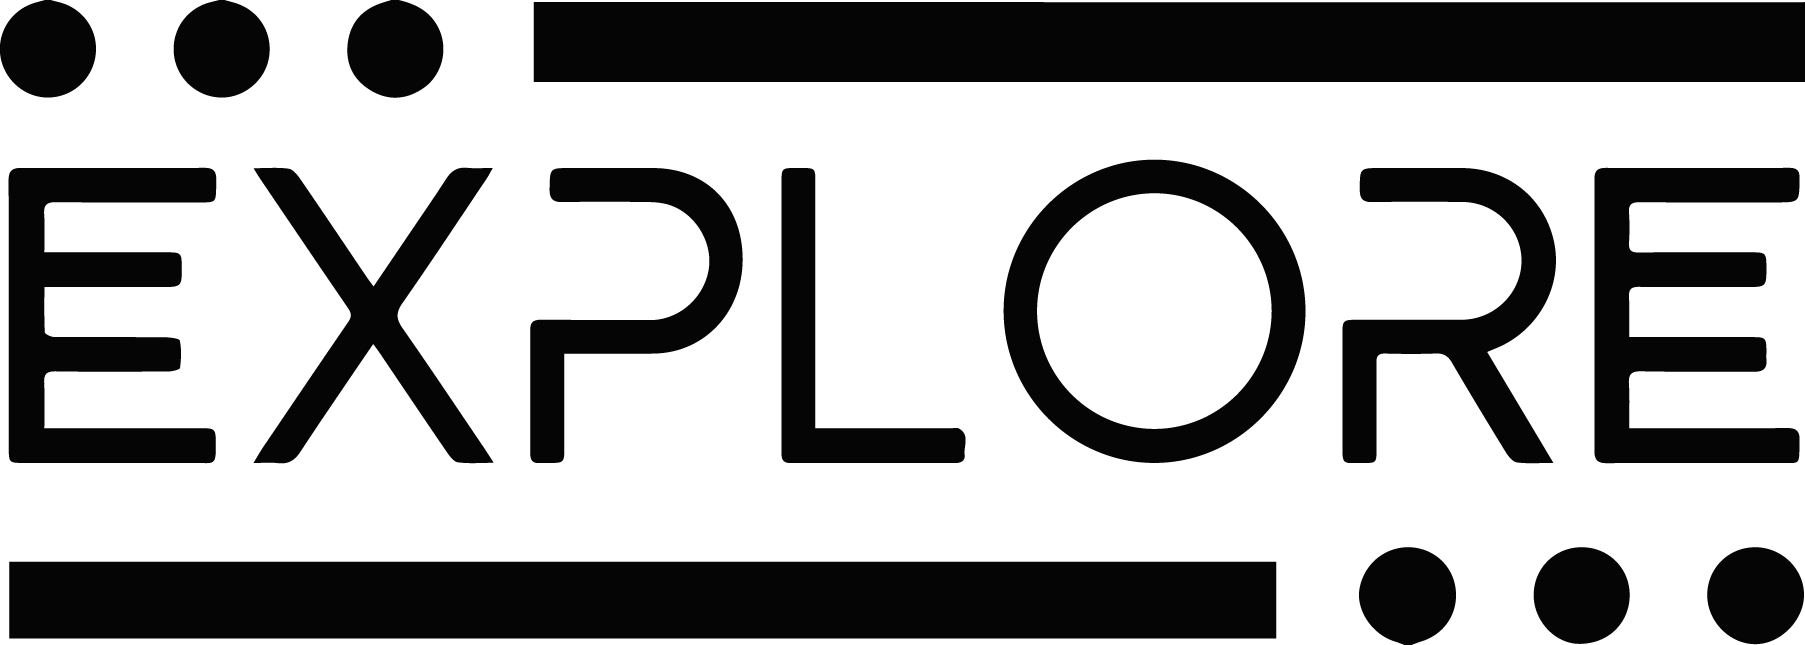 Explore-Logo_Black